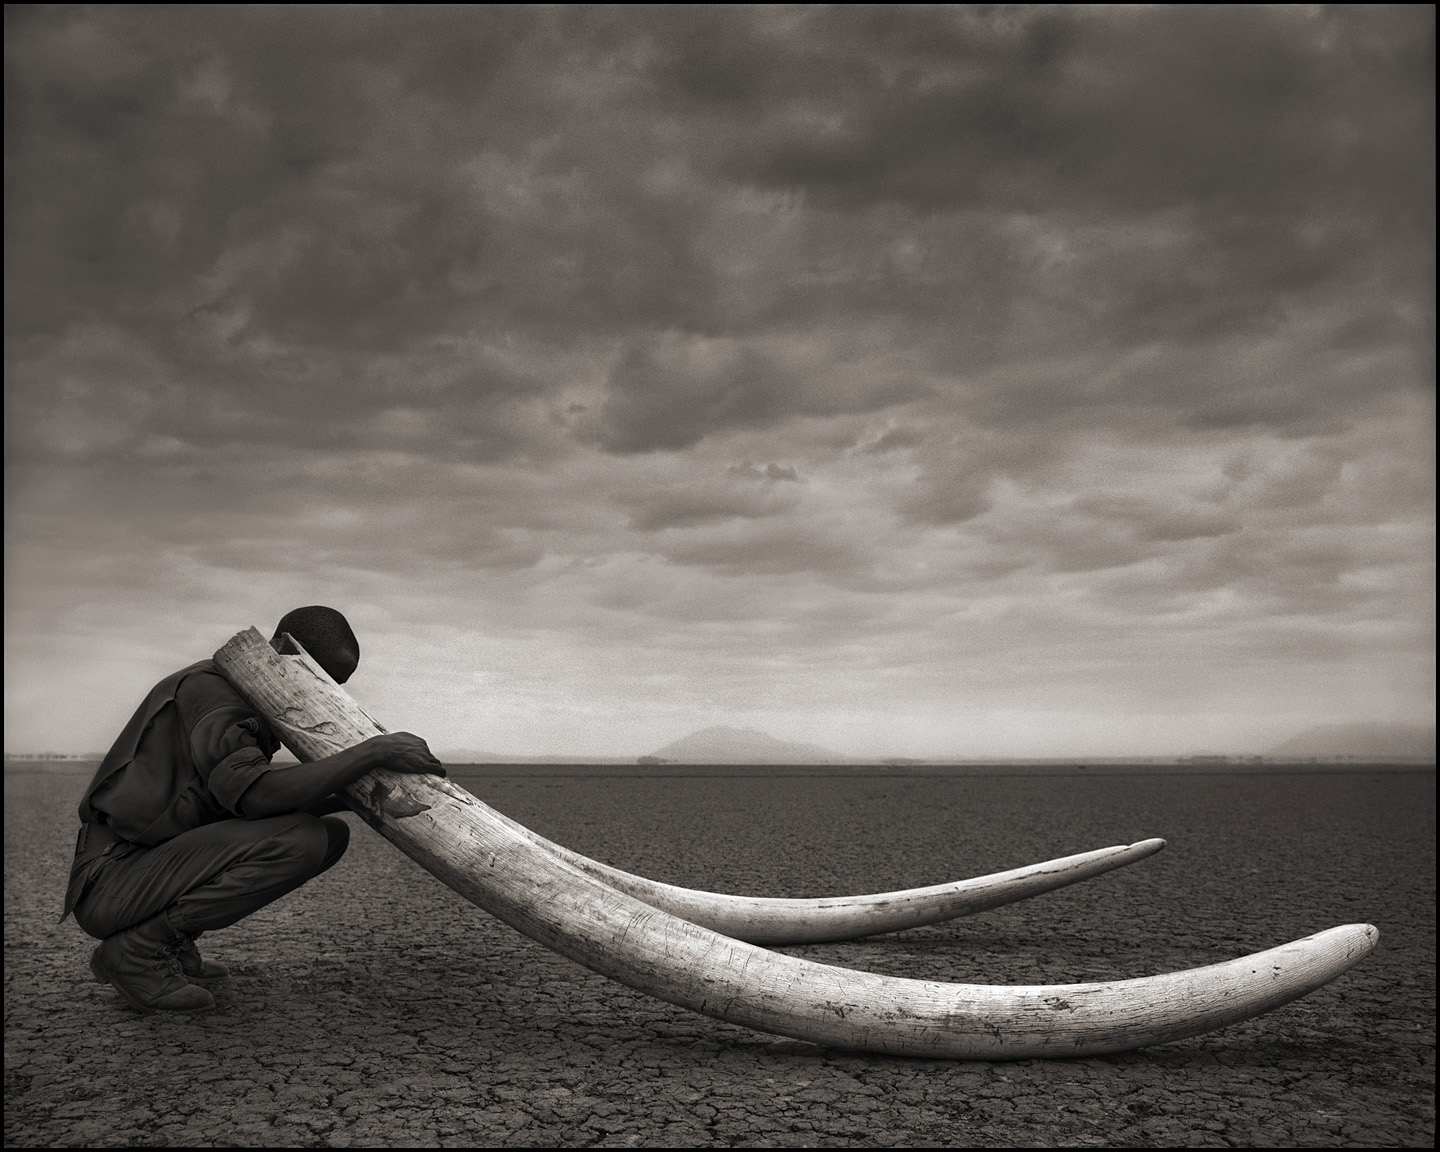 ©Nick Brandt, Ranger with Tusks of Dead Elephant, Amboselli, 2011.